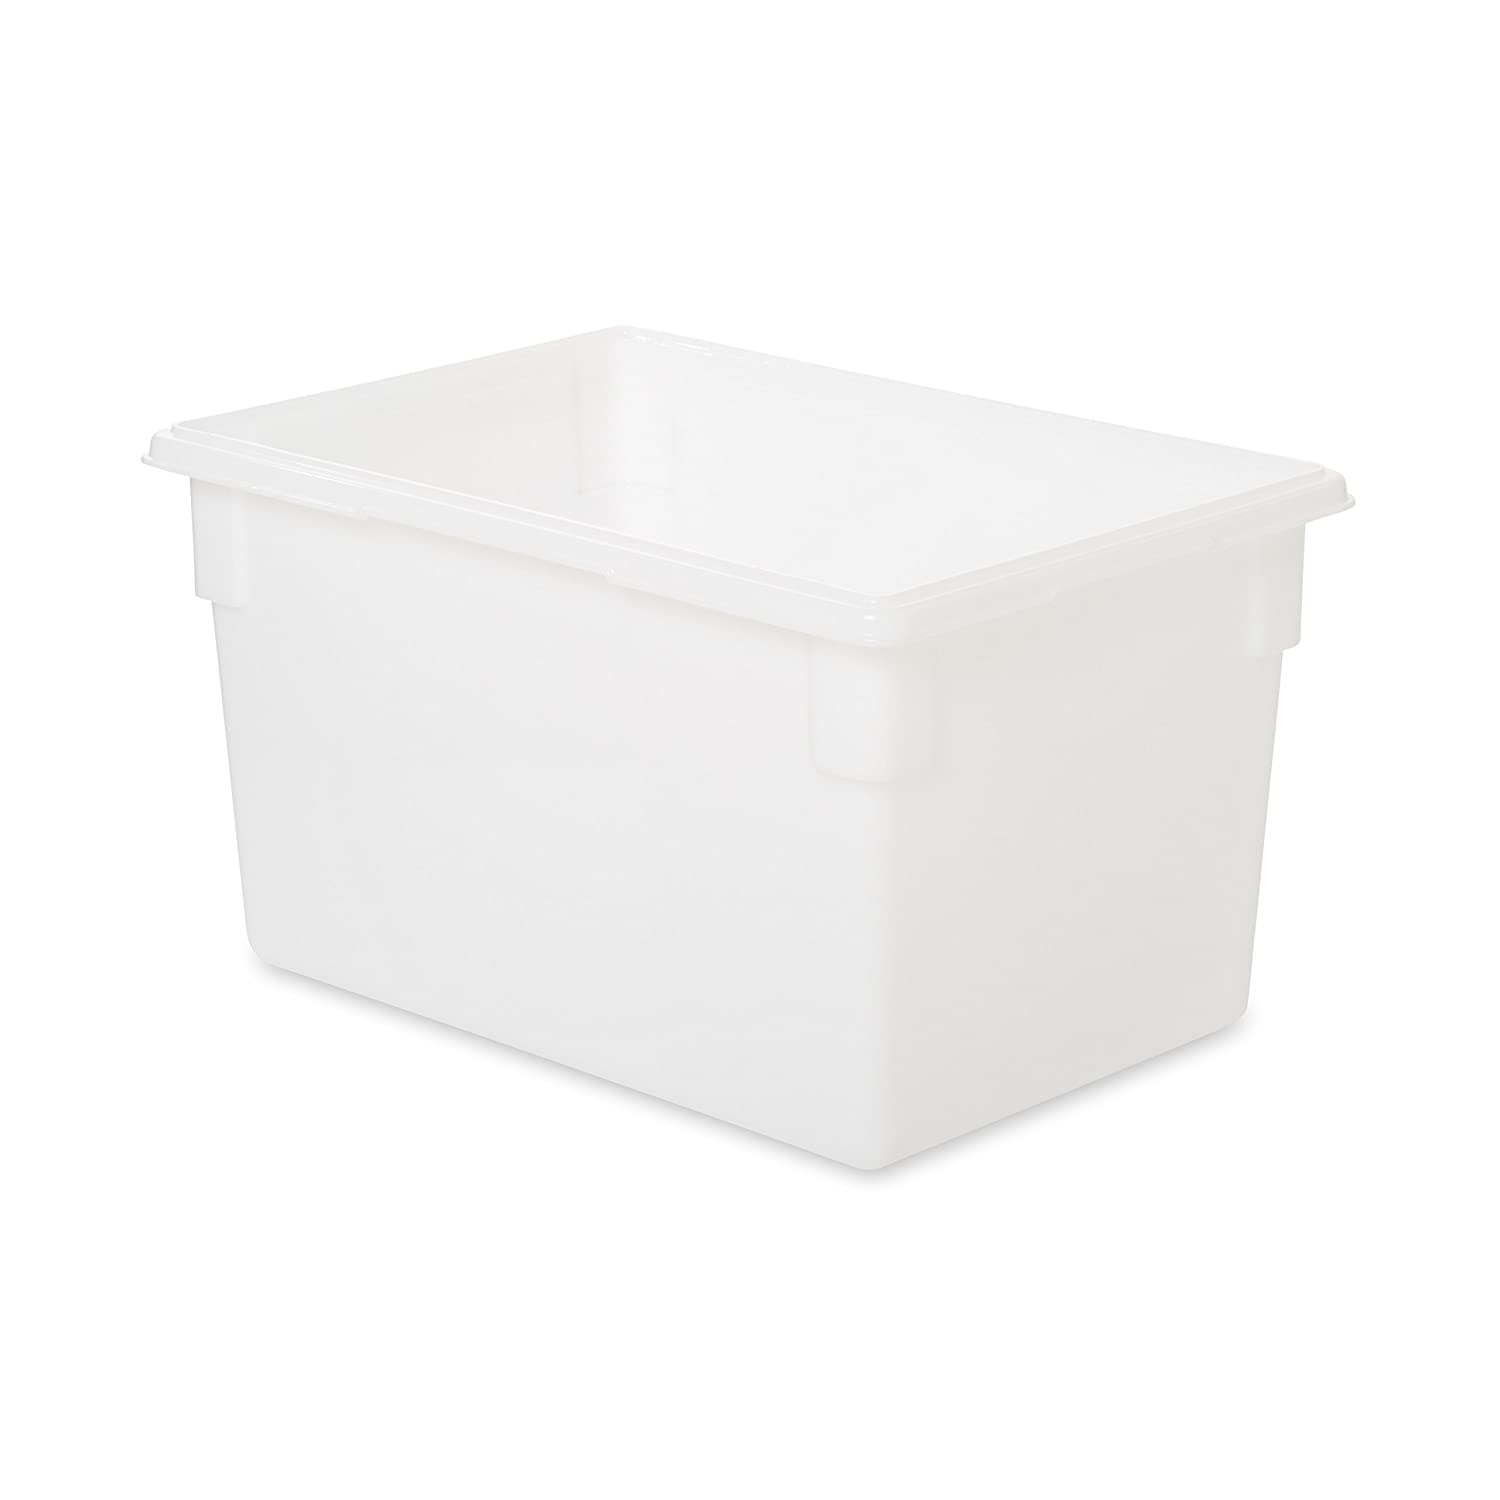 Rubbermaid Commercial Products Food Storage Box/Tote for Restaurant/Kitchen/Cafeteria, 21.5 Gallon, White (FG350100WHT)